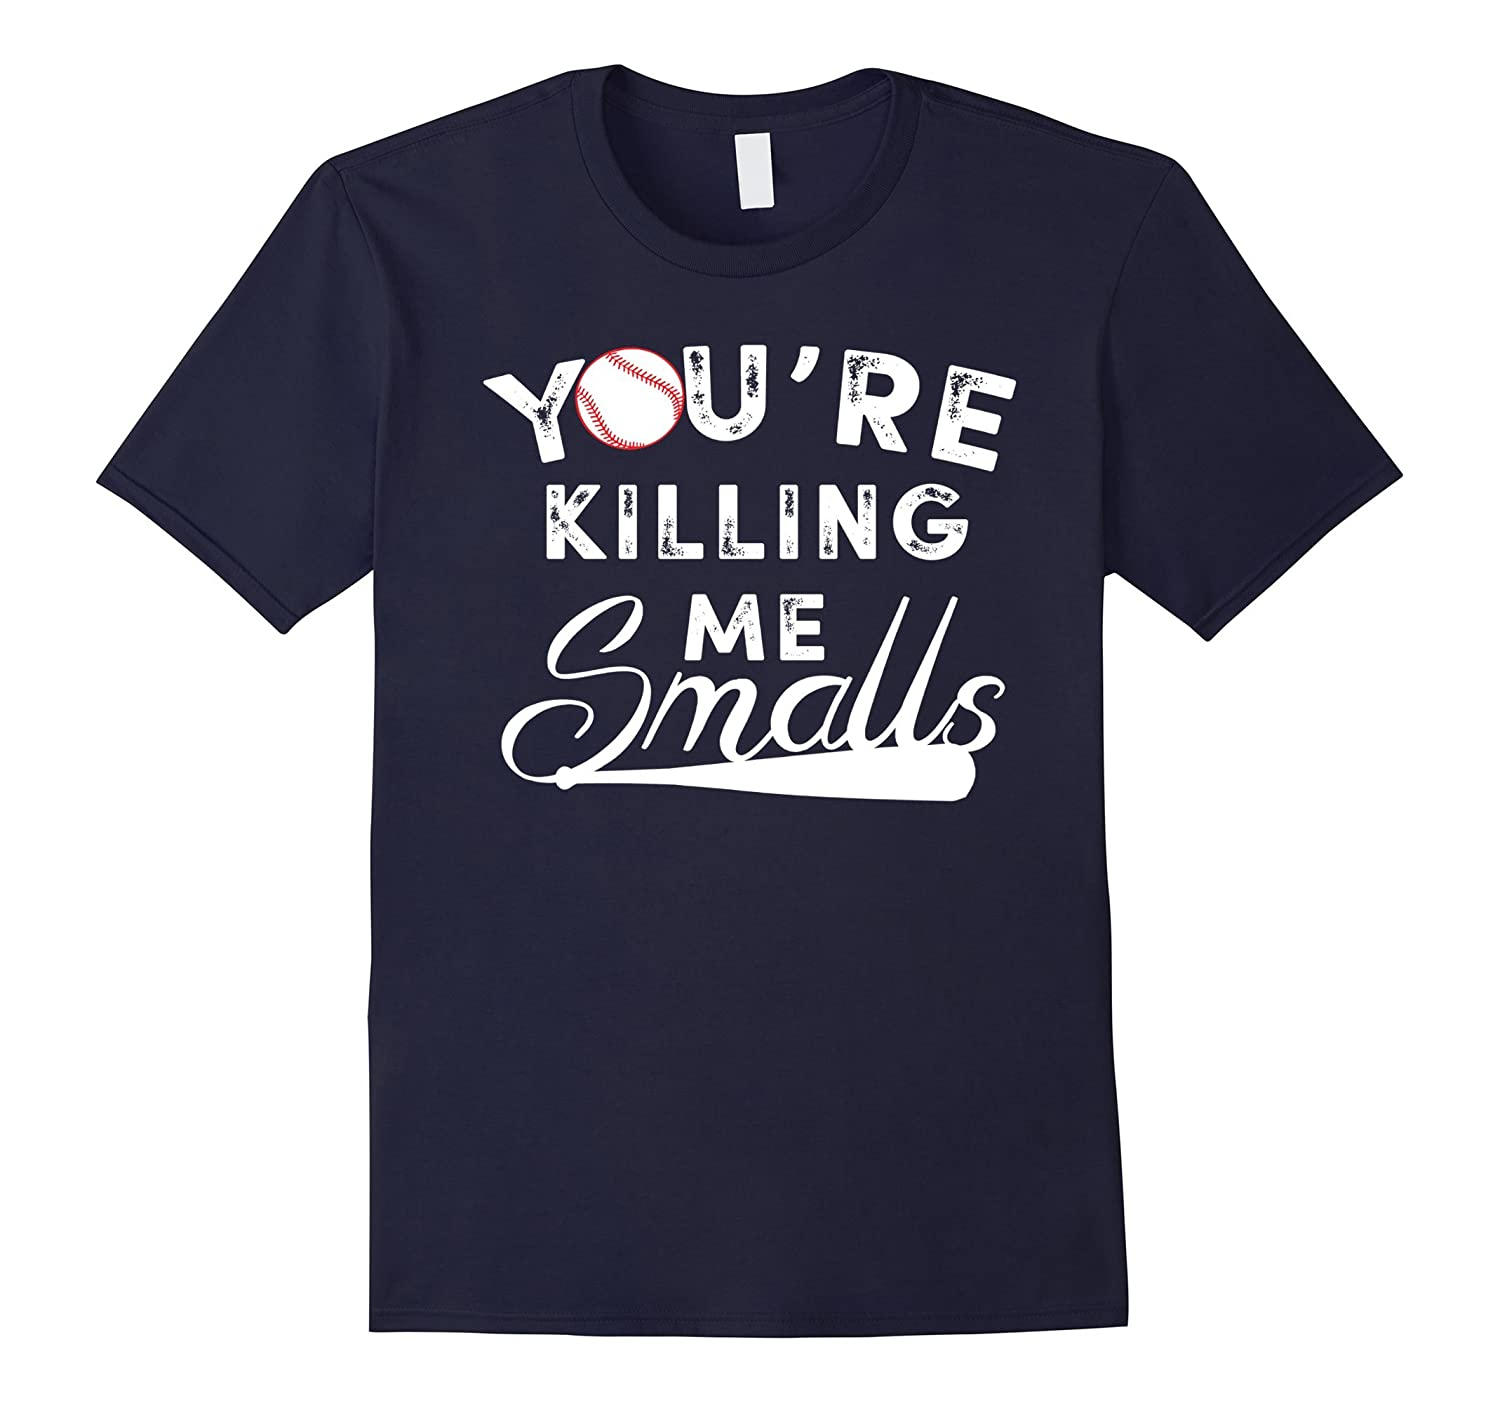 Youre Killing Me Smalls Baseball Shirt for Men And Women-TH